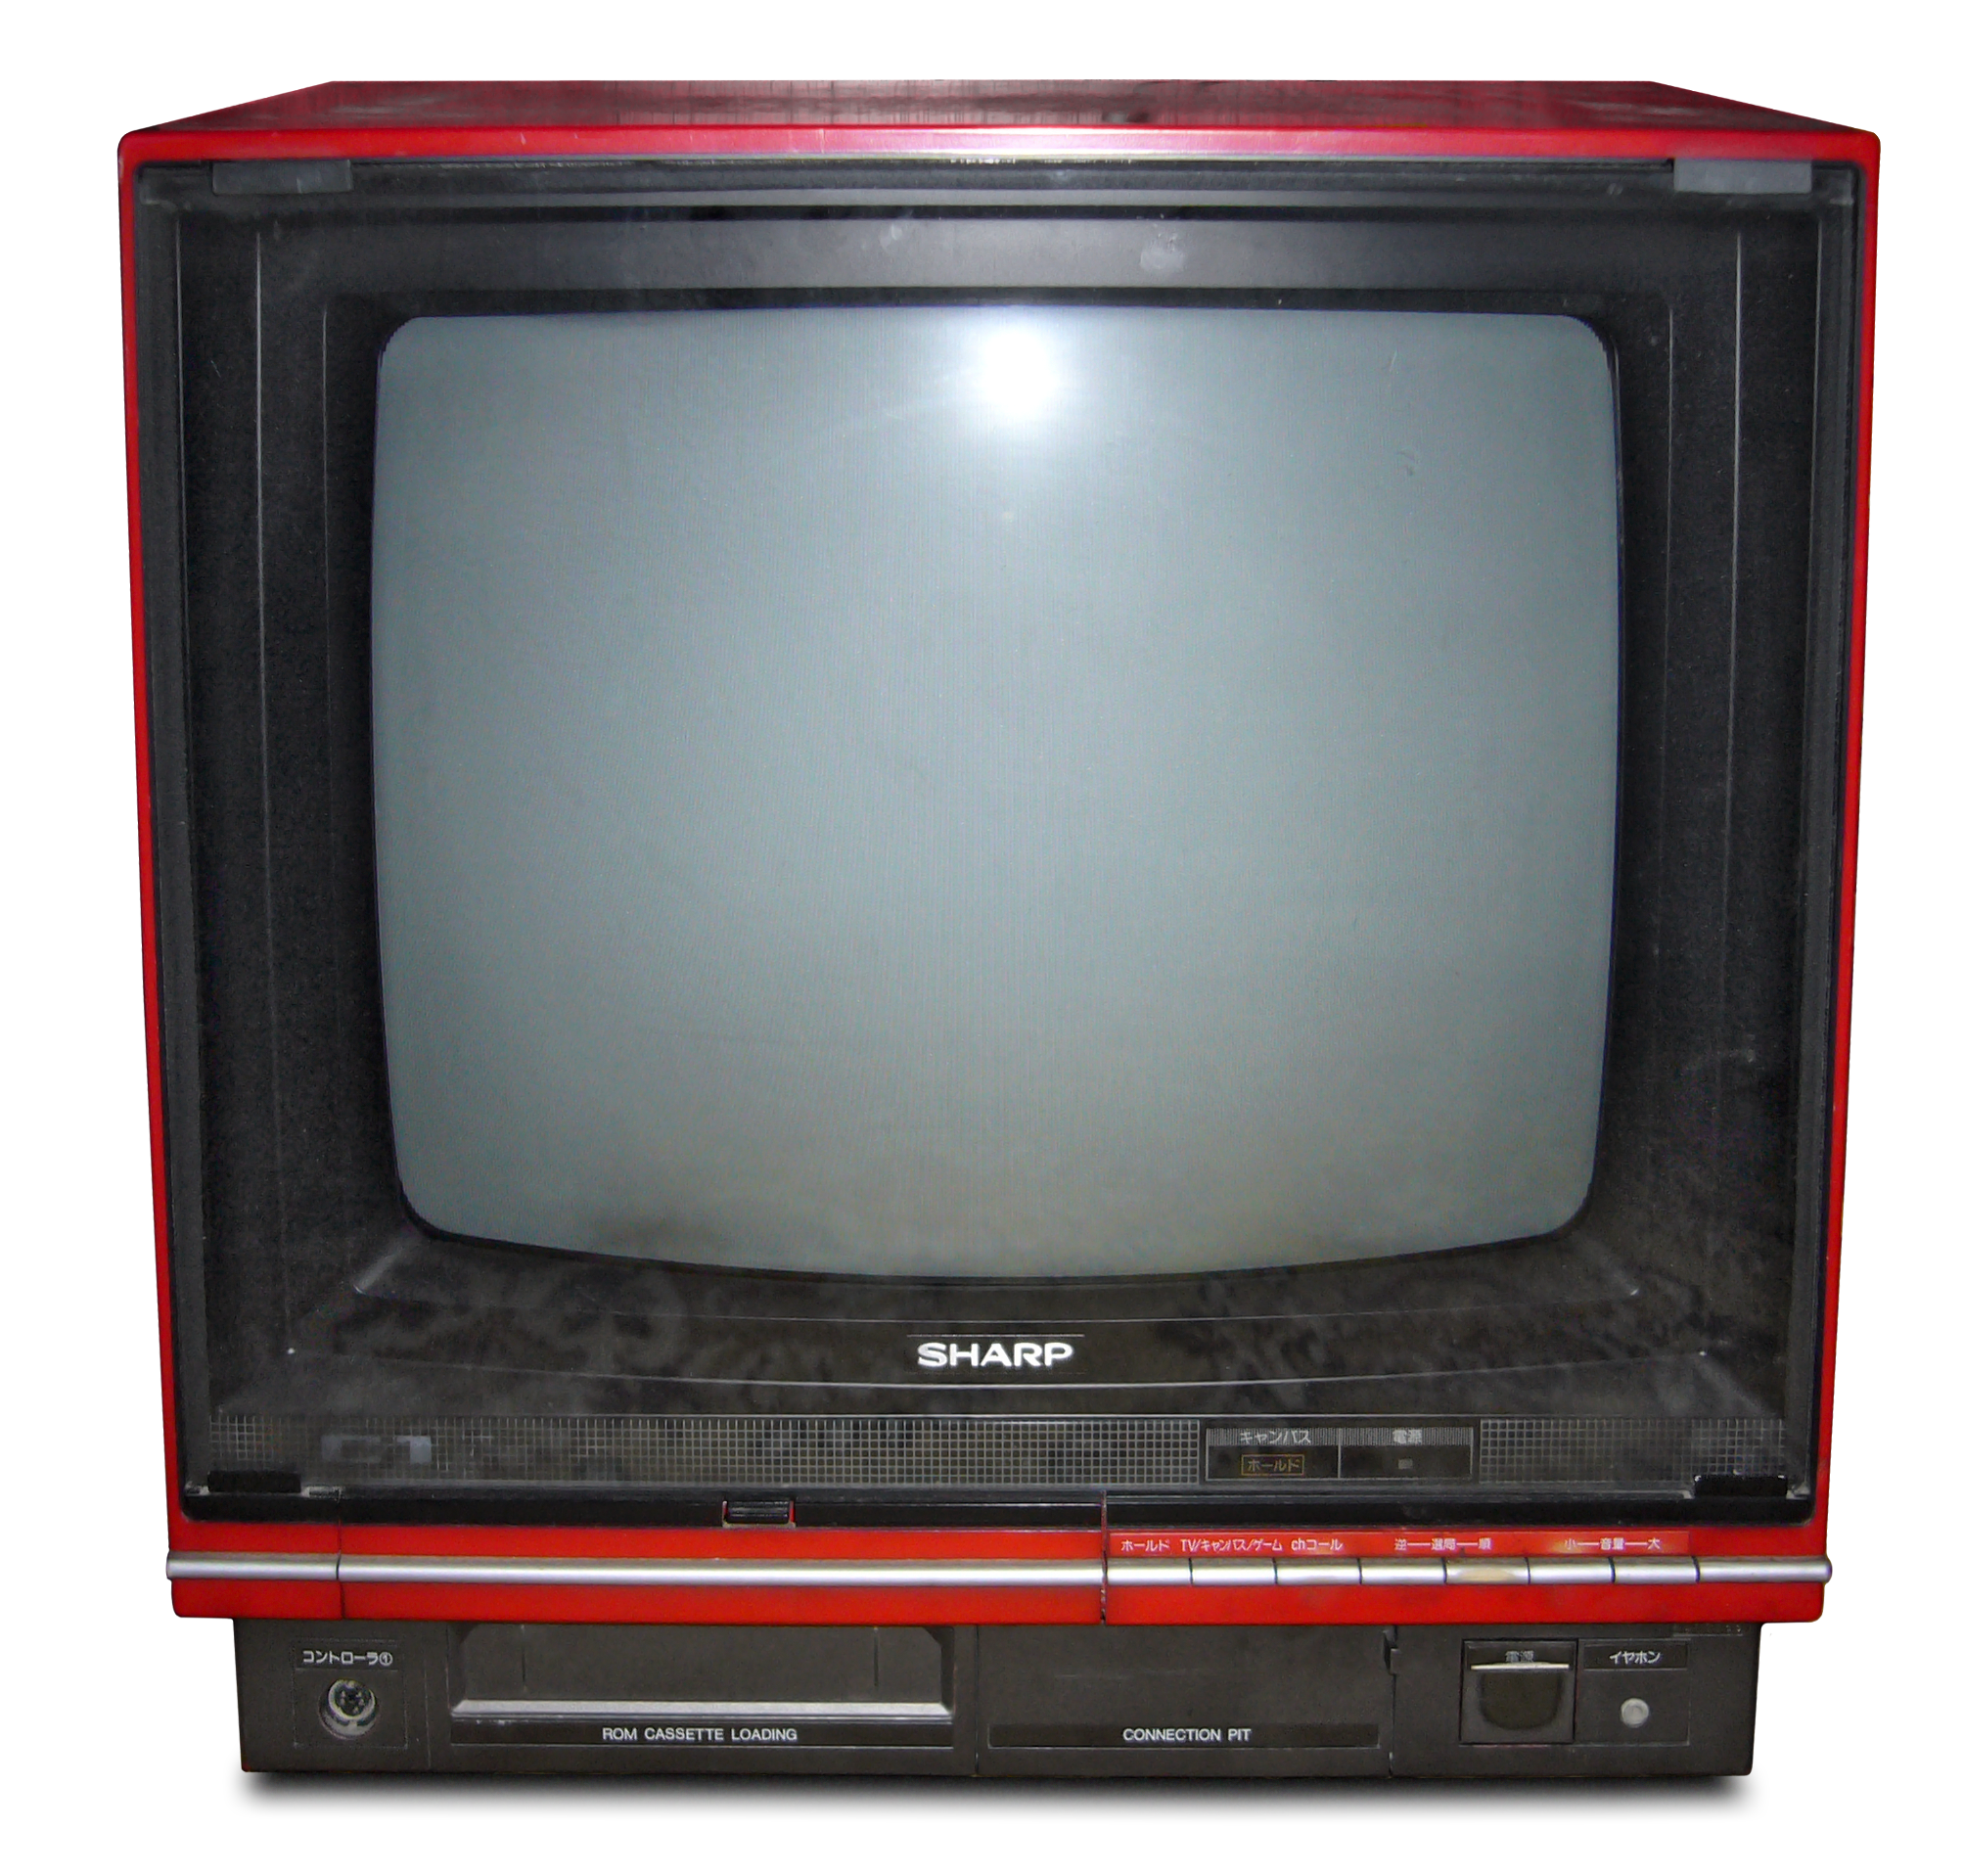 TV / VHS built in | TV Shows in 2018 | Pinterest | TVs and Televisions